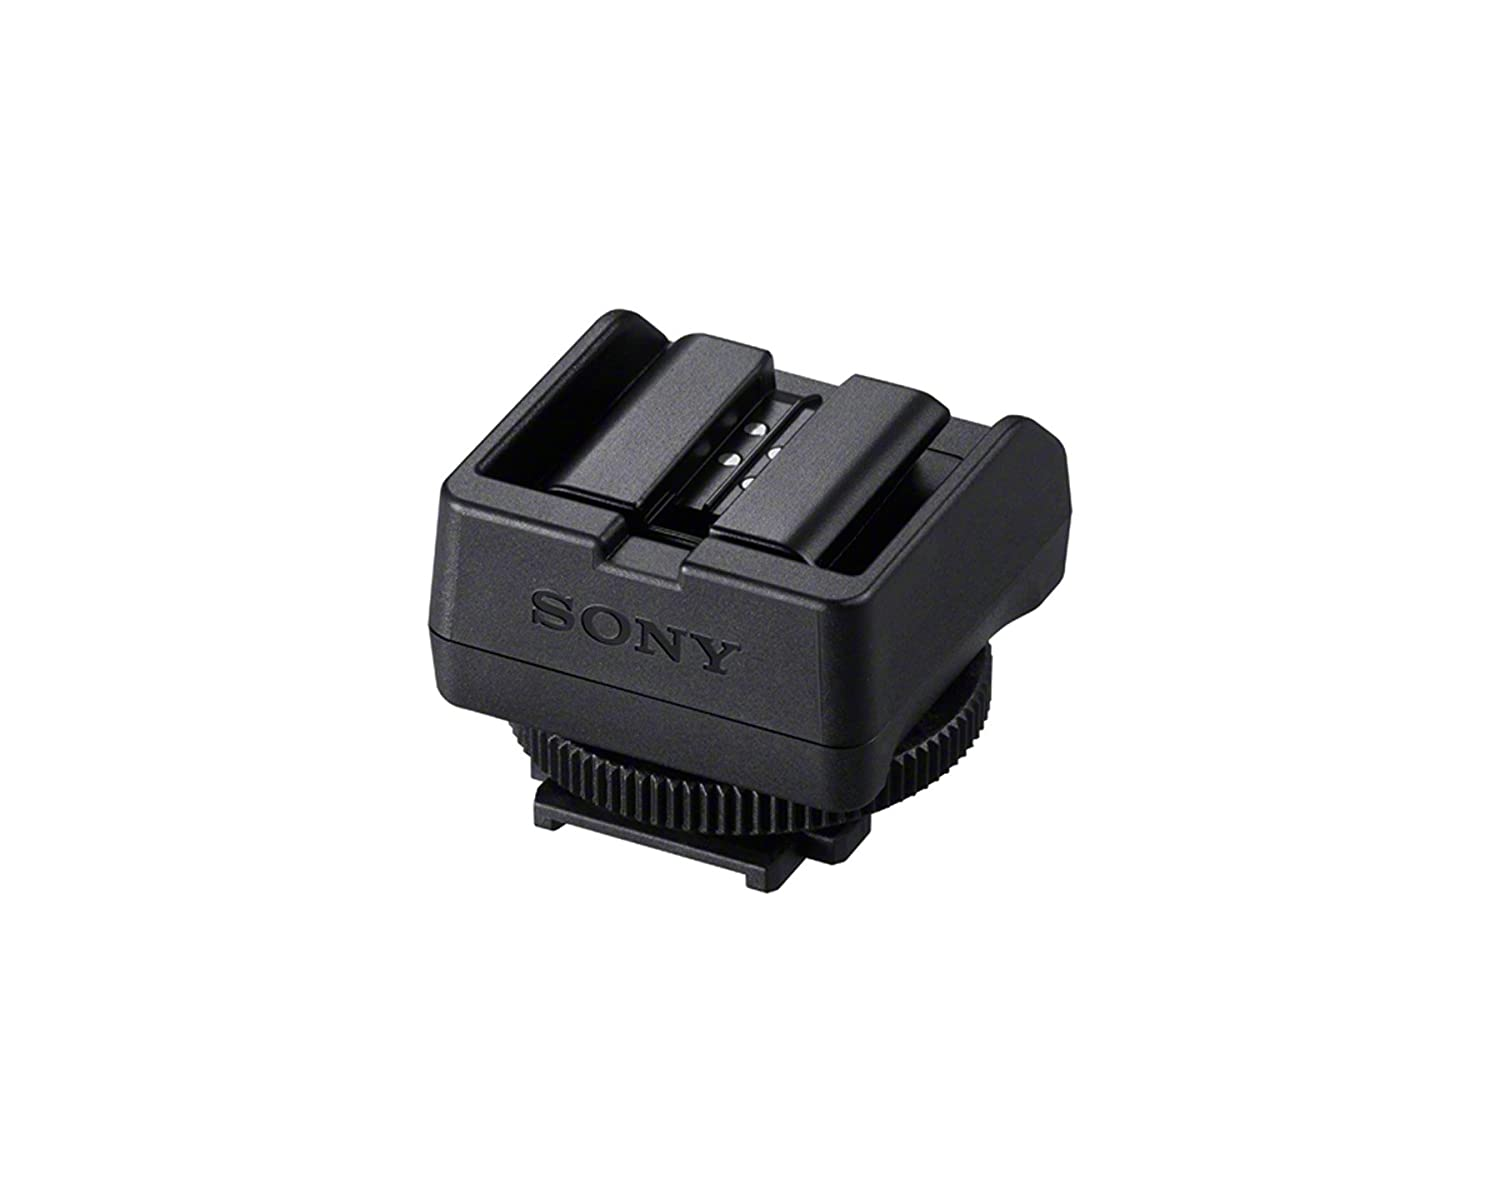 Sony ADPMAA Shoe Adaptor for Mi Shoe, (Black) ADP-MAA